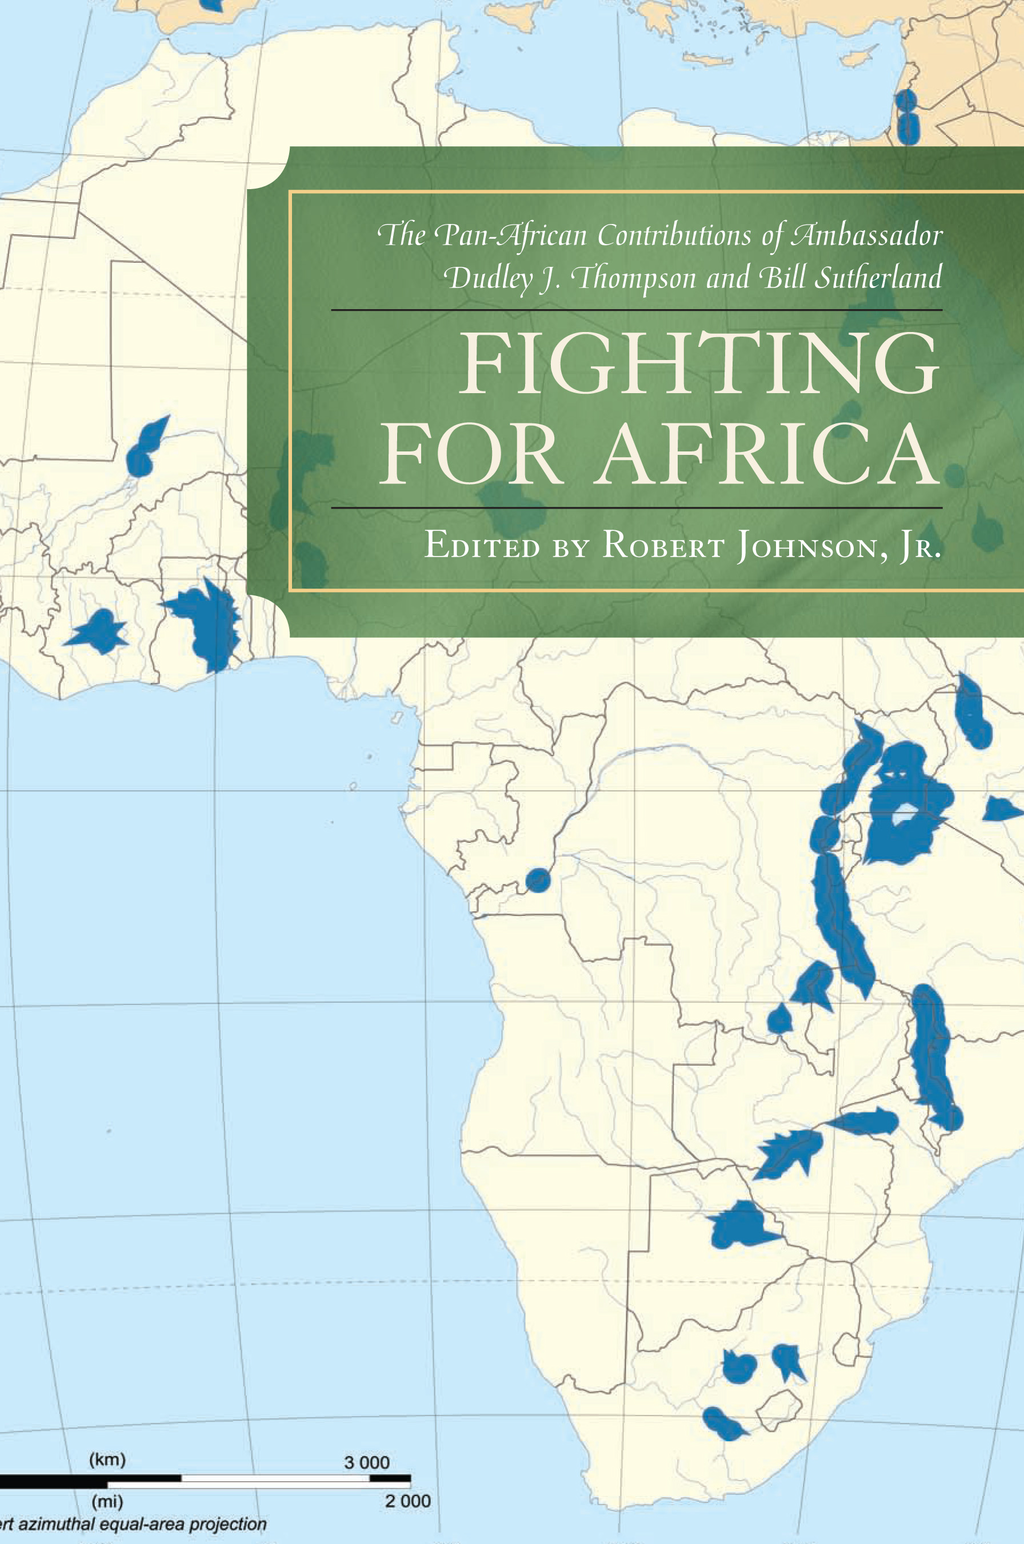 Fighting for Africa The Pan-African Contributions of Ambassador Dudley J. Thompson and Bill Sutherland